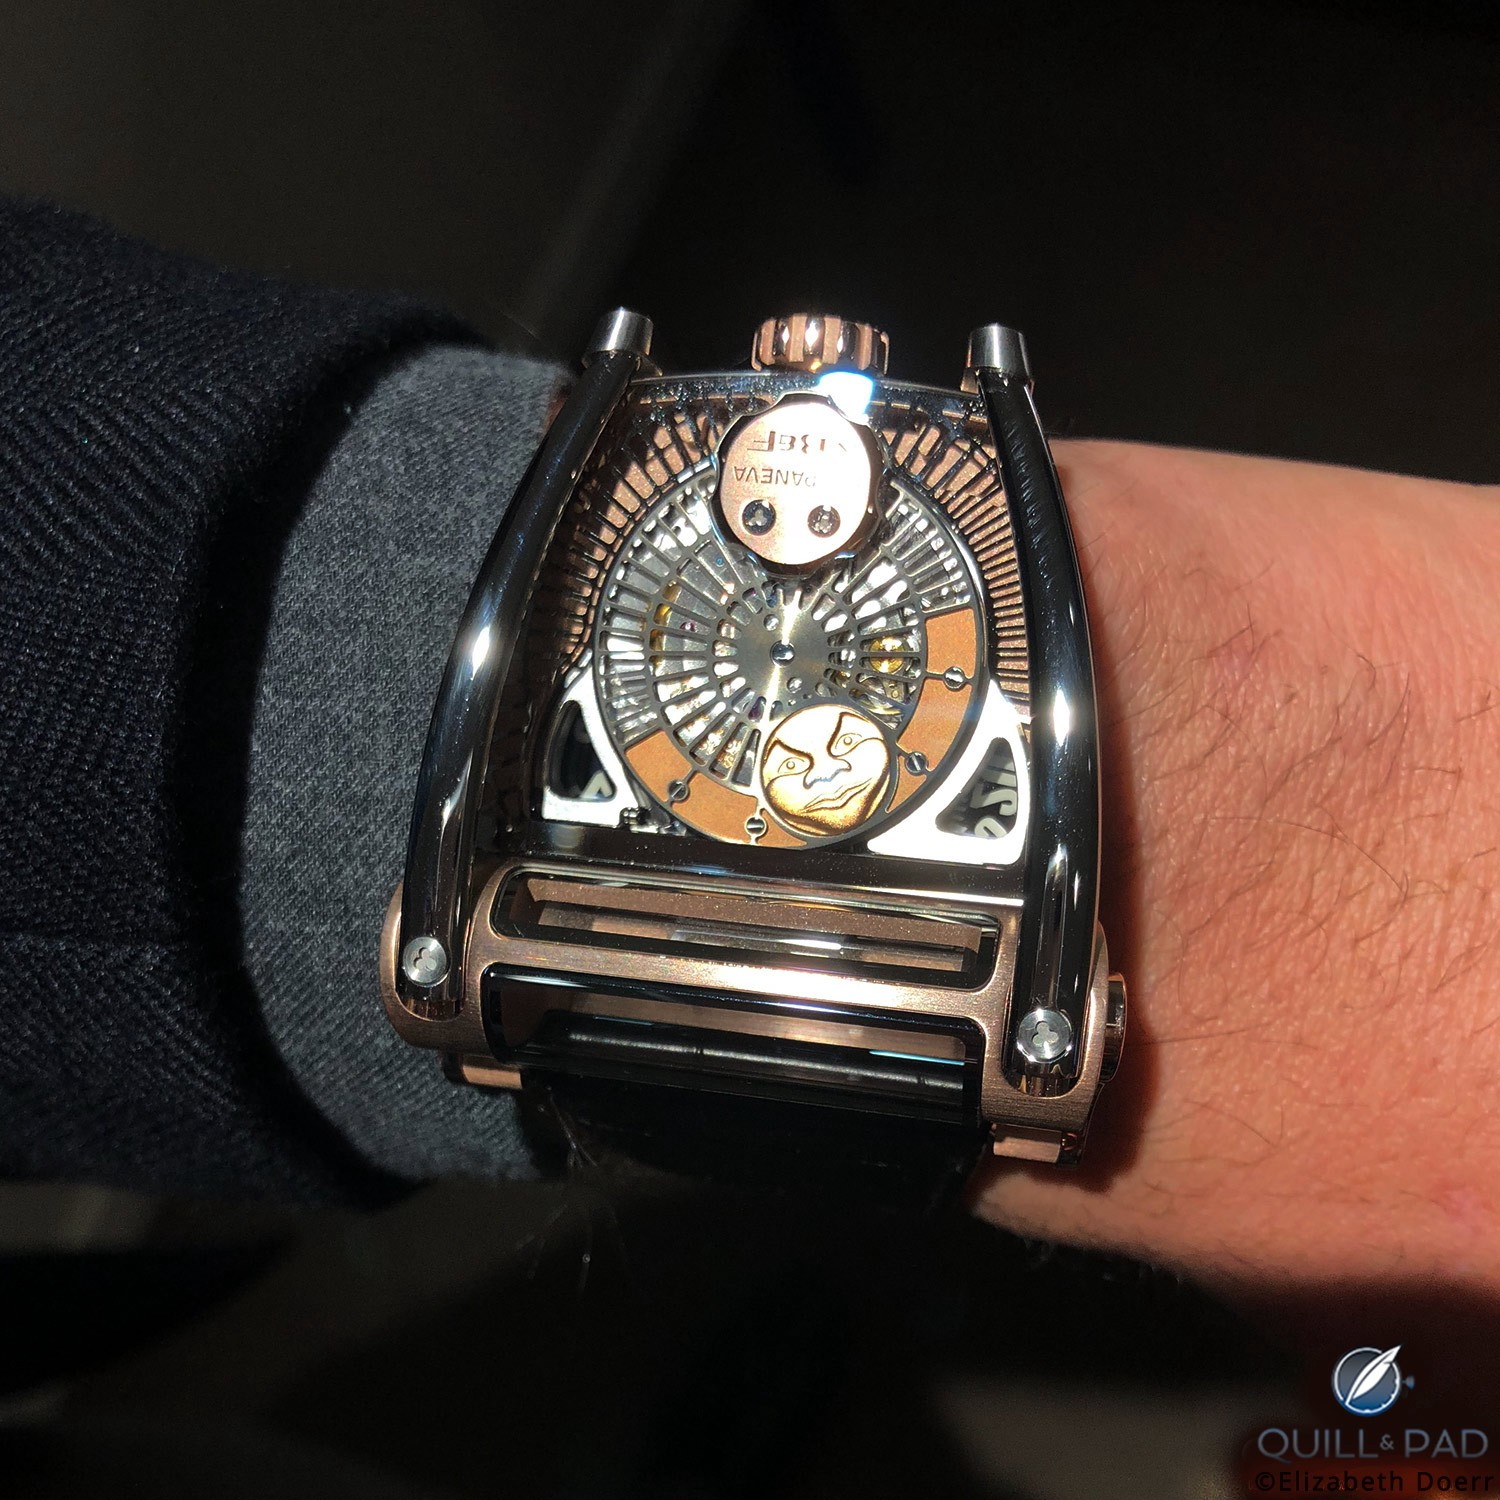 MoonMachine 2 by MB&F with Stepan Sarpaneva on the wrist